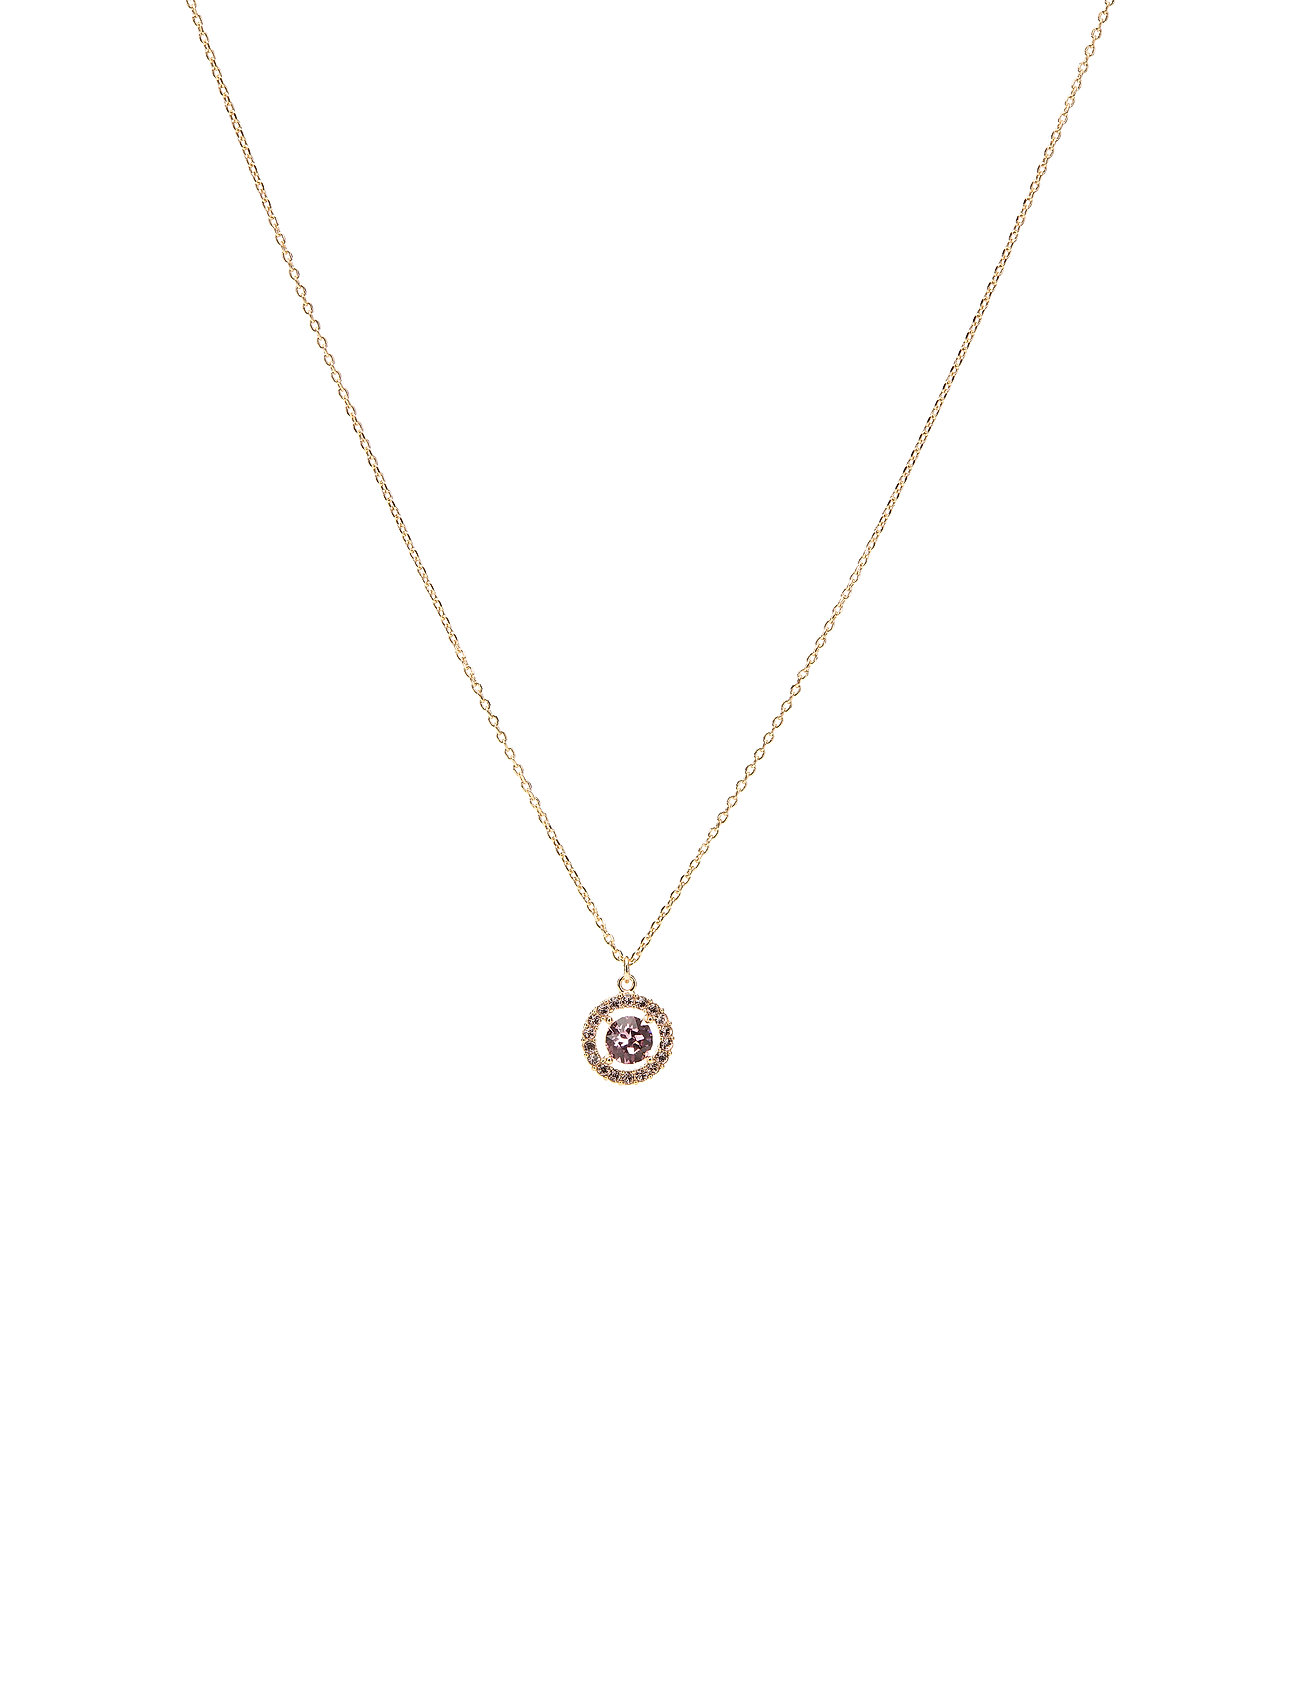 Image of Miss Miranda Necklace - Light Rose Accessories Jewellery Necklaces Dainty Necklaces Lilla LILY AND ROSE (3308423535)